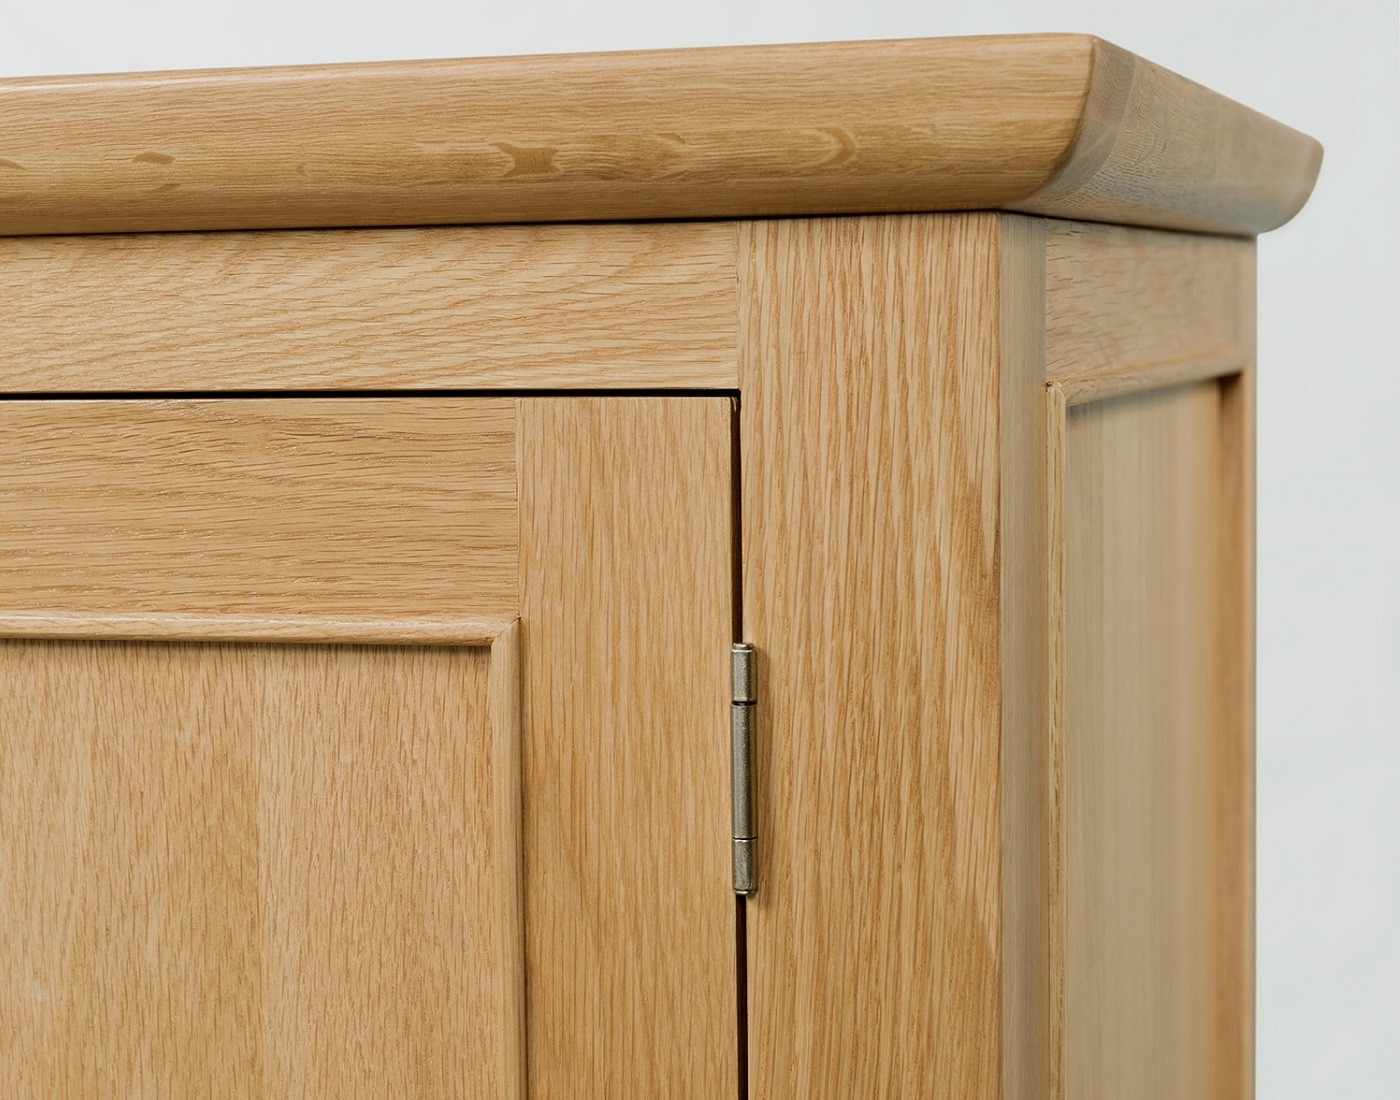 Well Known Single Oak Wardrobes With Drawers With Regard To Cheshire Light Oak Single Wardrobe With Drawer (View 13 of 15)